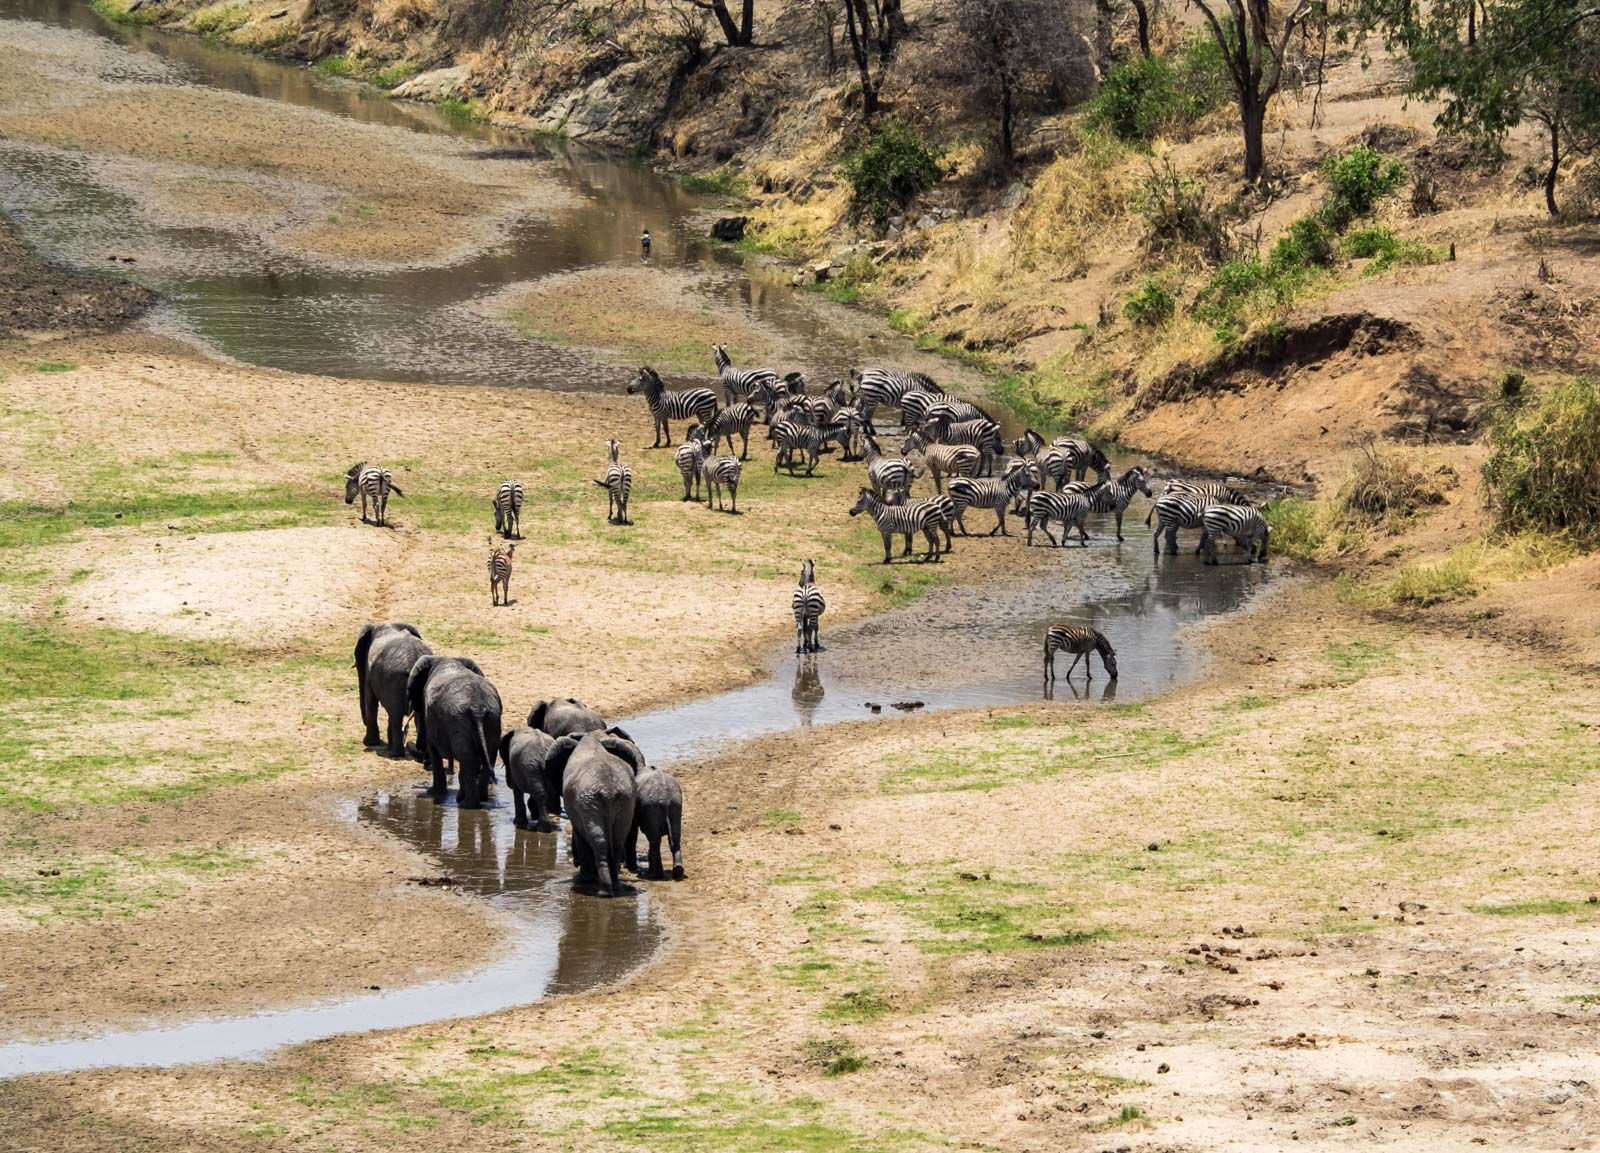 Elephants and Zebra at Tarangire River